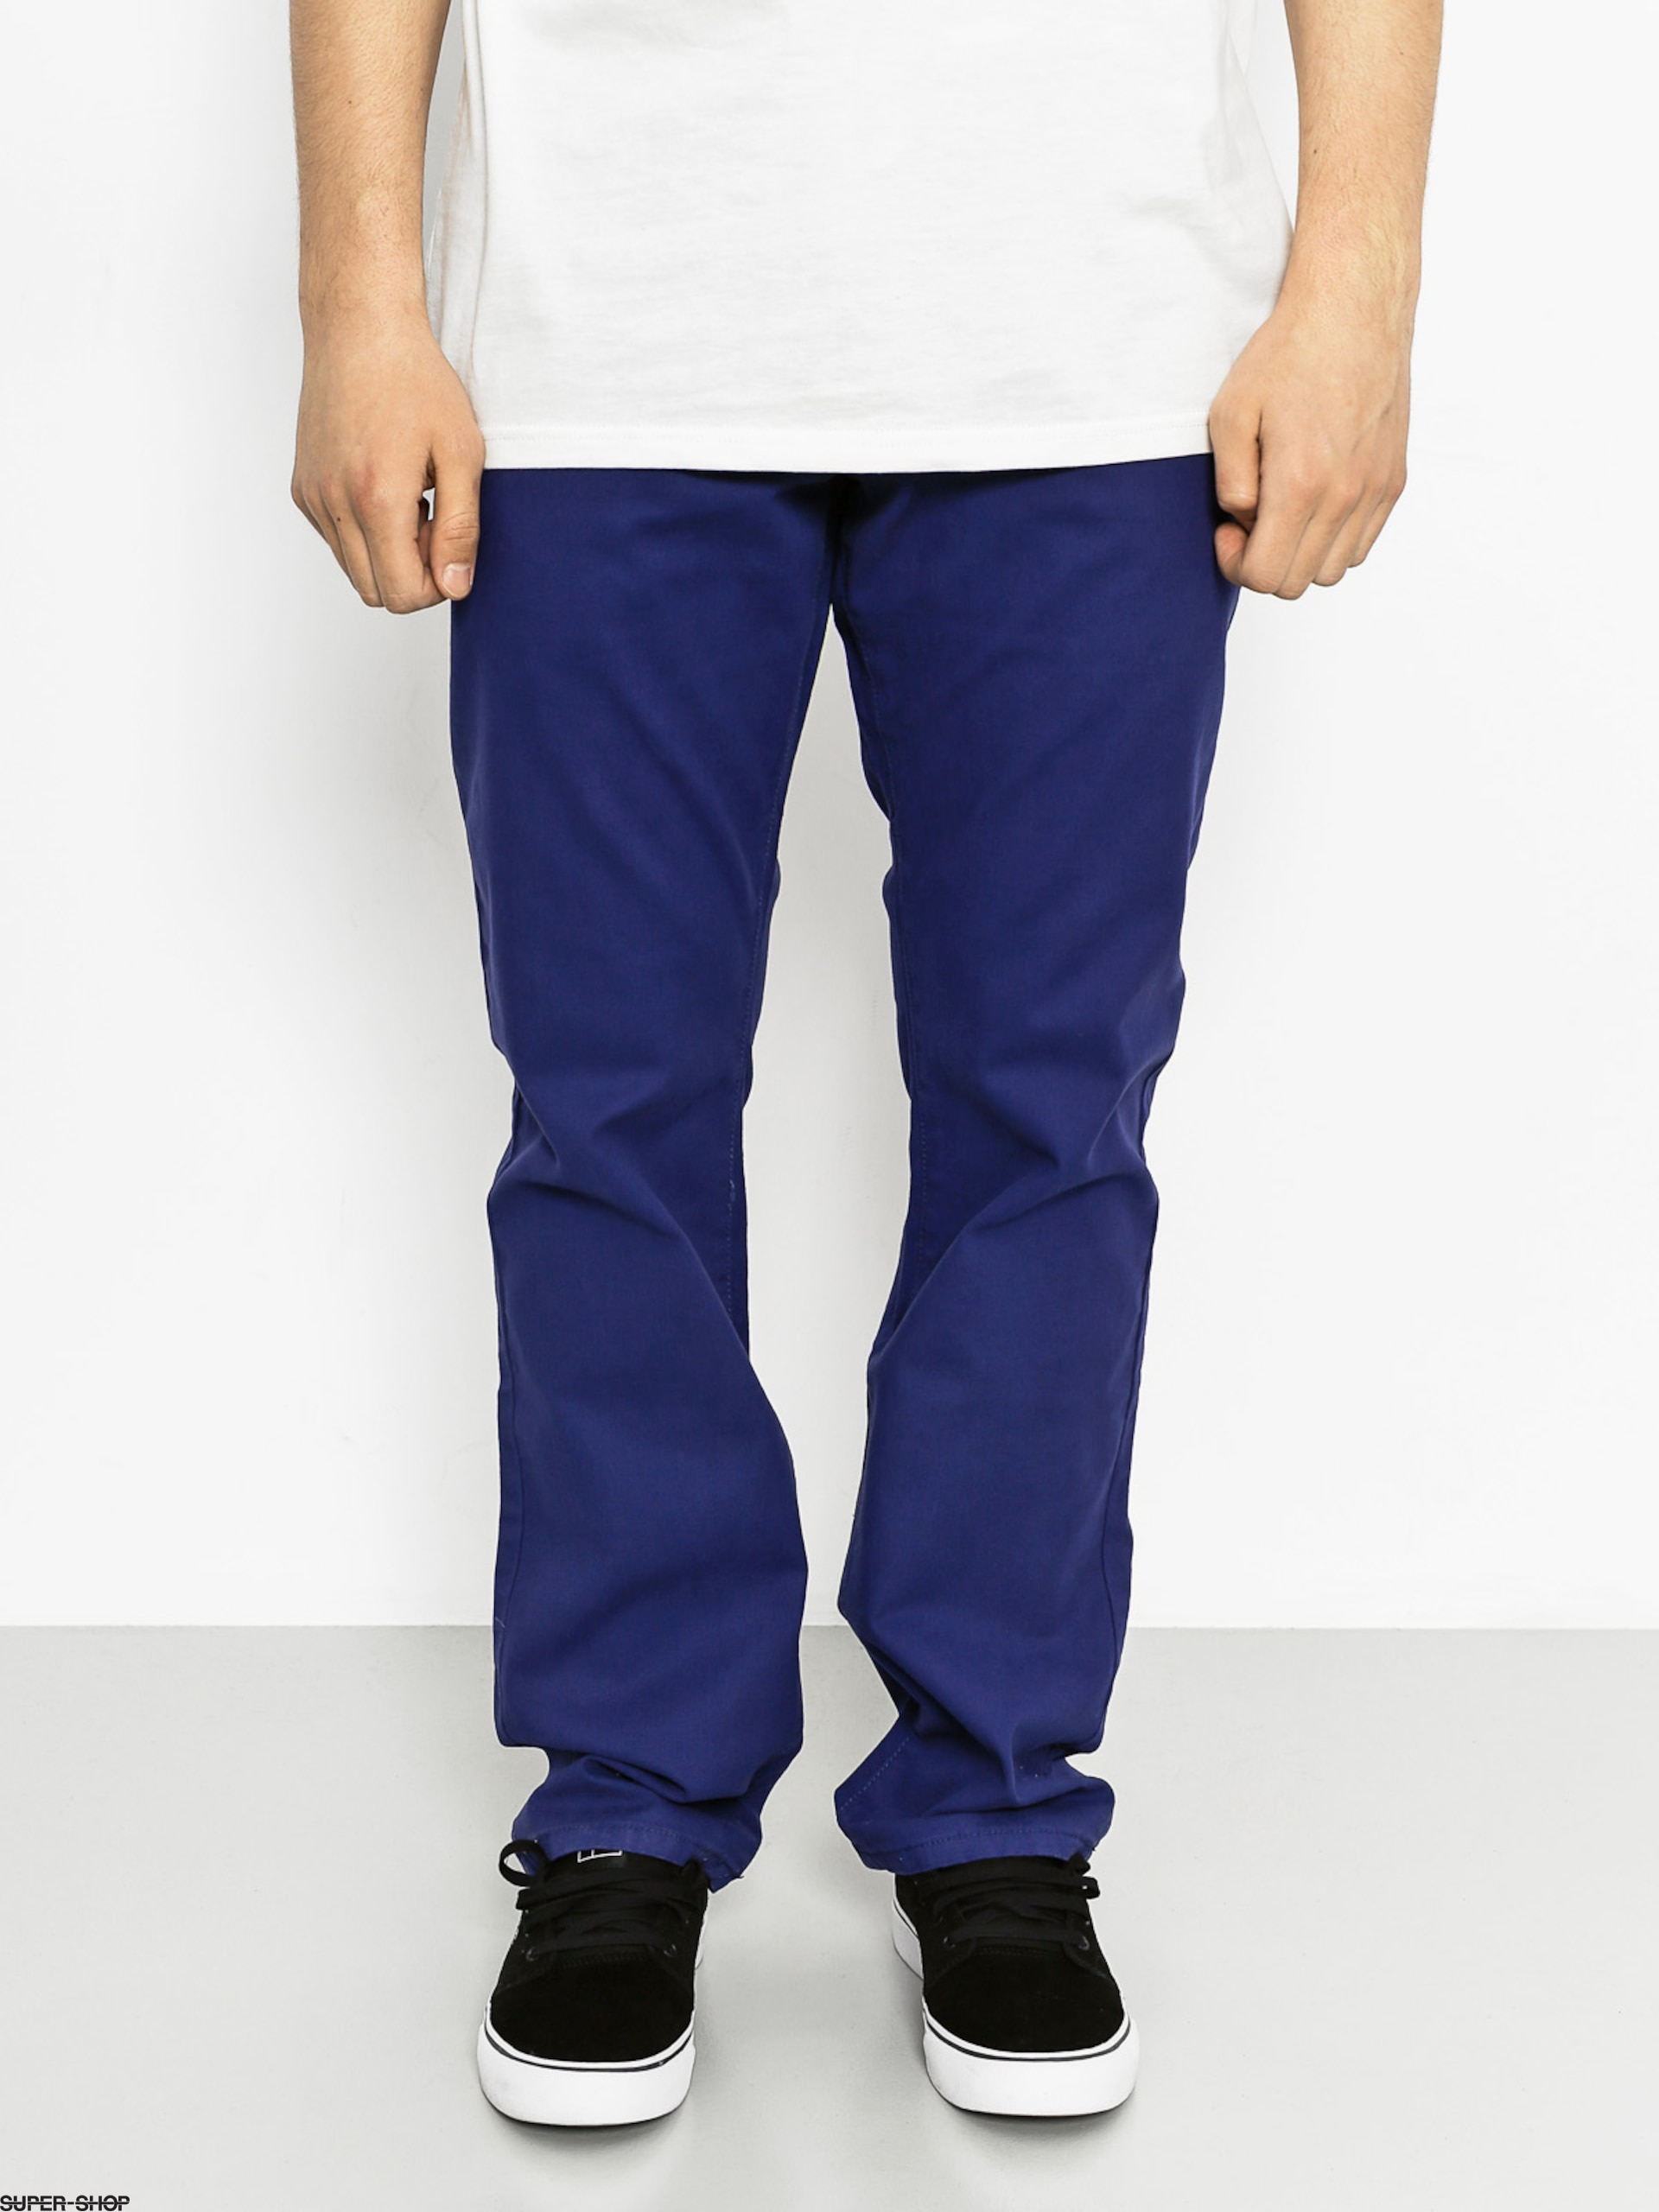 Malita pants Rotten Slim Fit (nvy/blu)